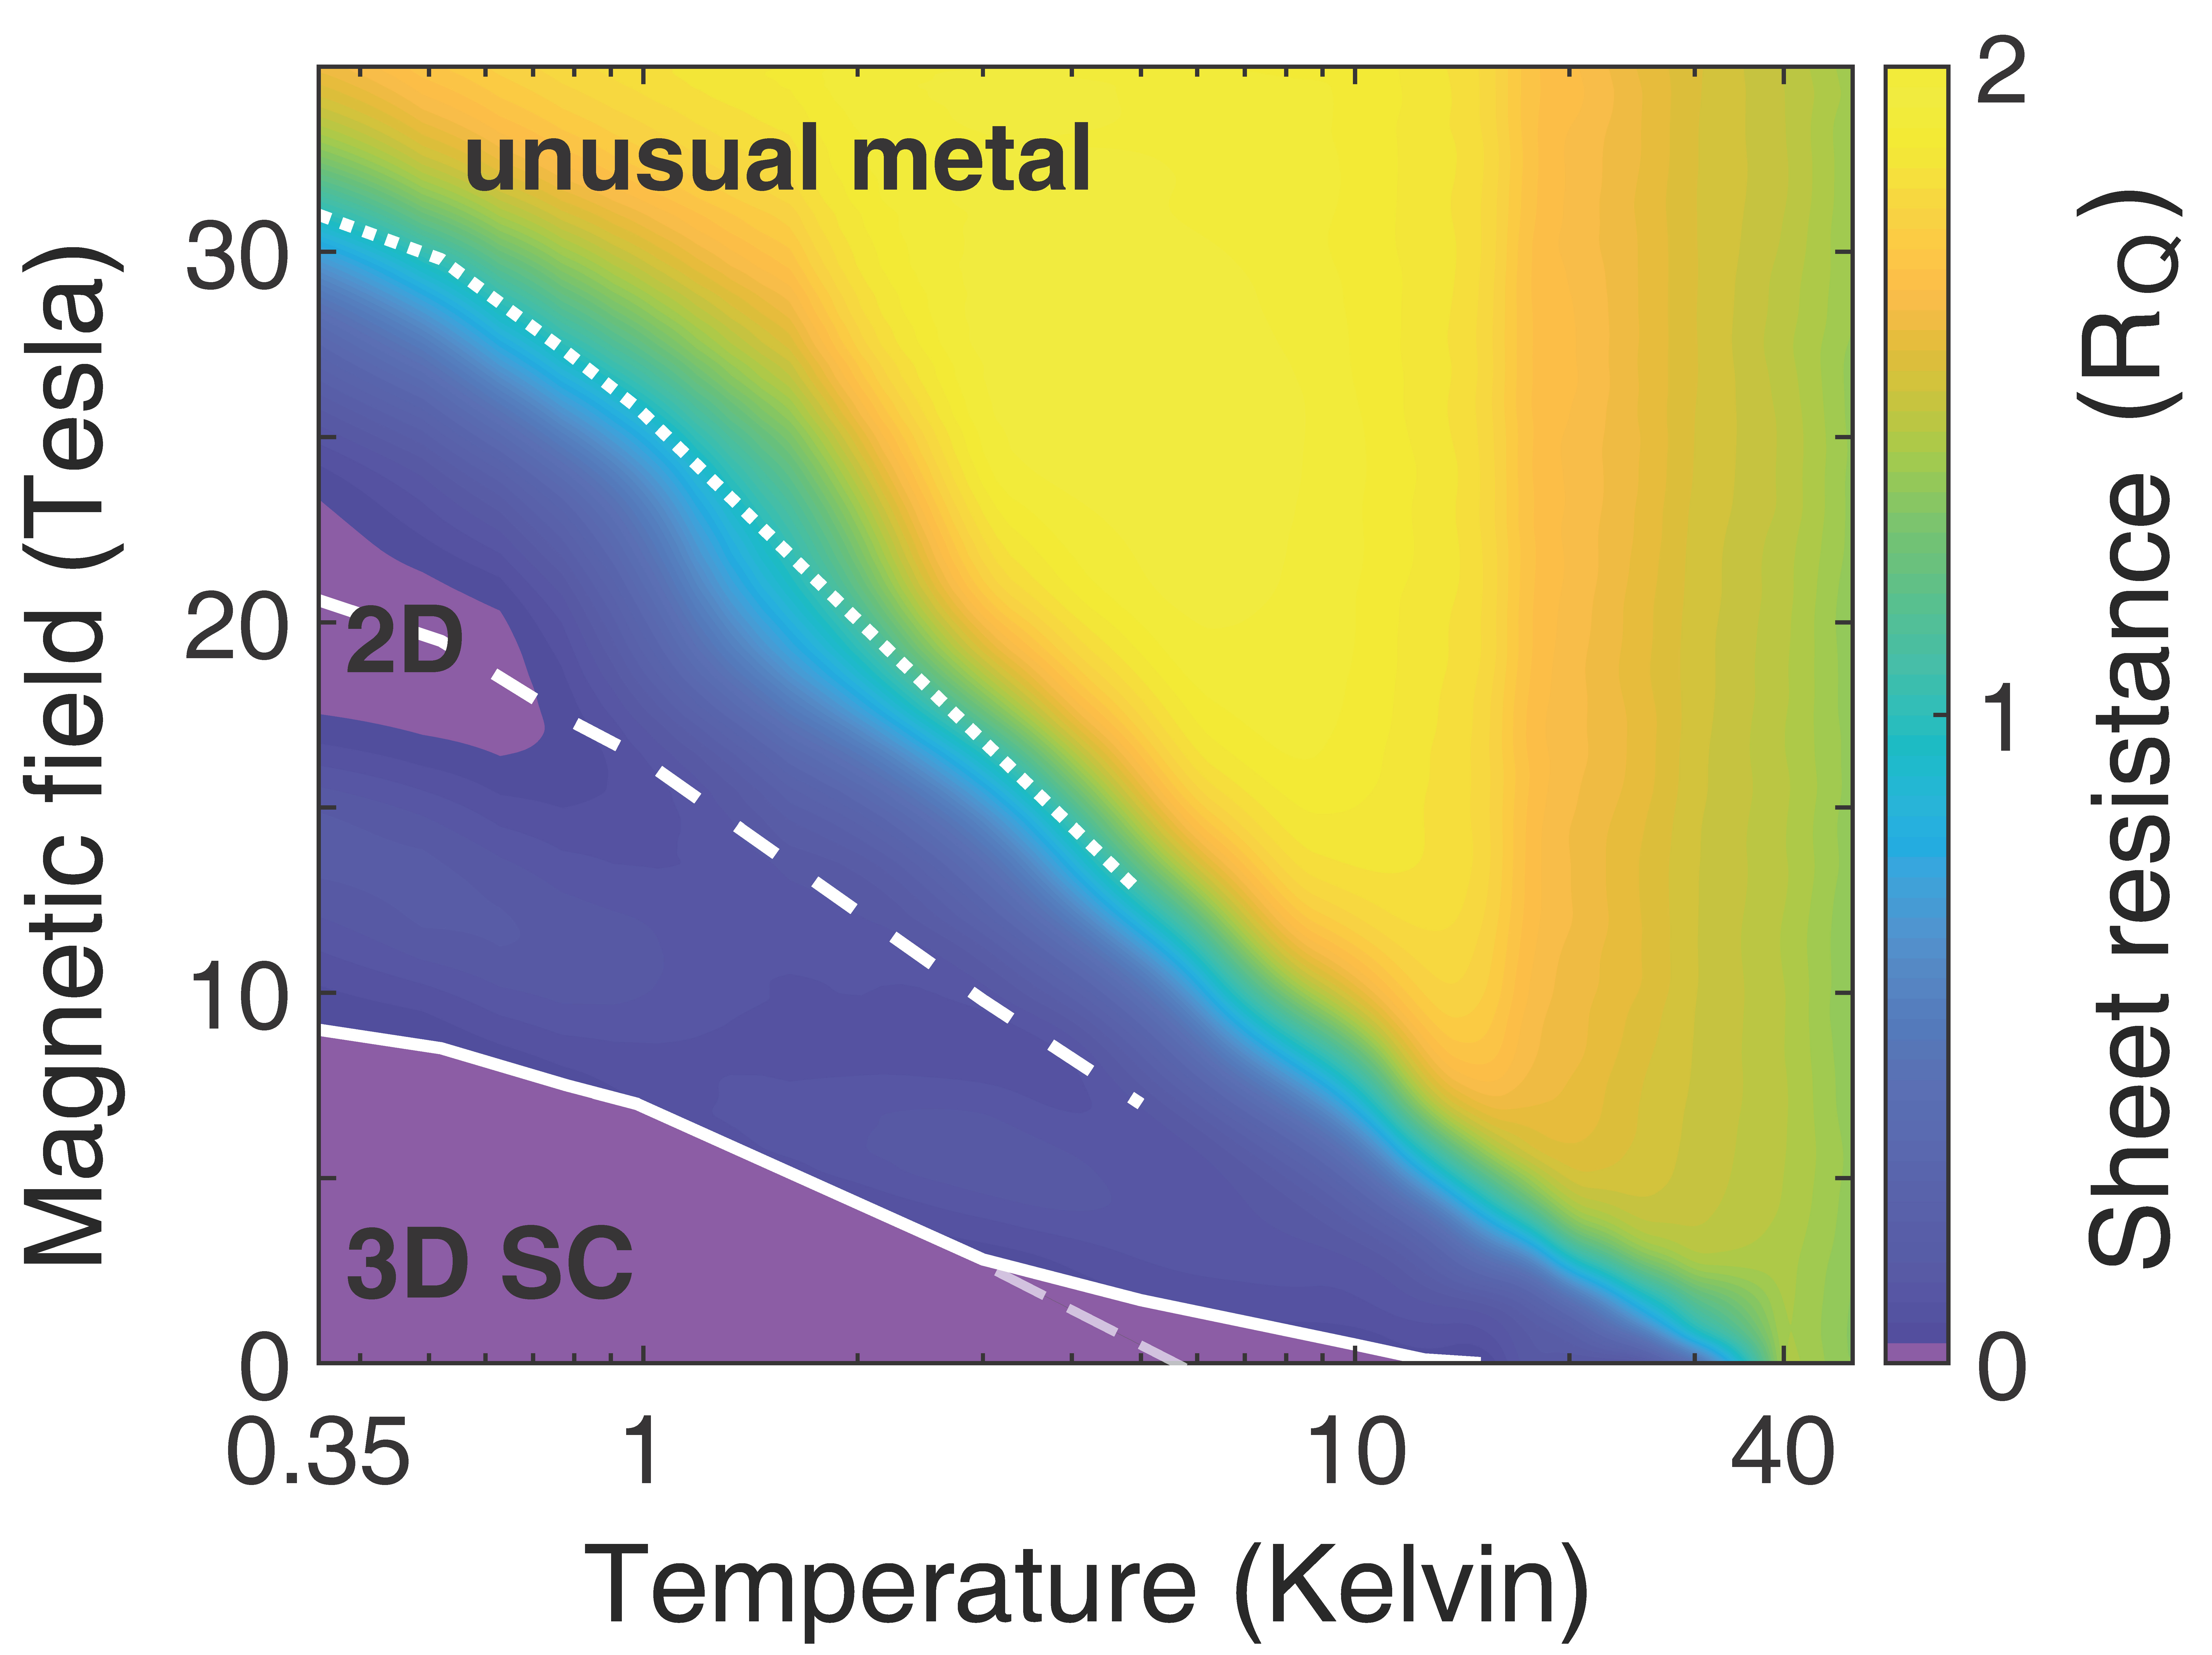 A phase diagram of LBCO at different temperatures and magnetic field strengths. Colors represent how resistant the material is to the flow of electrical current, with purple being a superconductor with no resistance. When cooled to near absolute zero with no magnetic field, the material acts as a 3-D superconductor. As the magnetic field strength goes up, 3-D superconductivity disappears, but 2-D superconductivity reappears at higher field strength, then disappears again. At the highest fields, resistance grew, but the material retained some unusual metallic conductivity, which the scientists interpreted as an indication that charge-carrier pairs might persist even after superconductivity is destroyed.